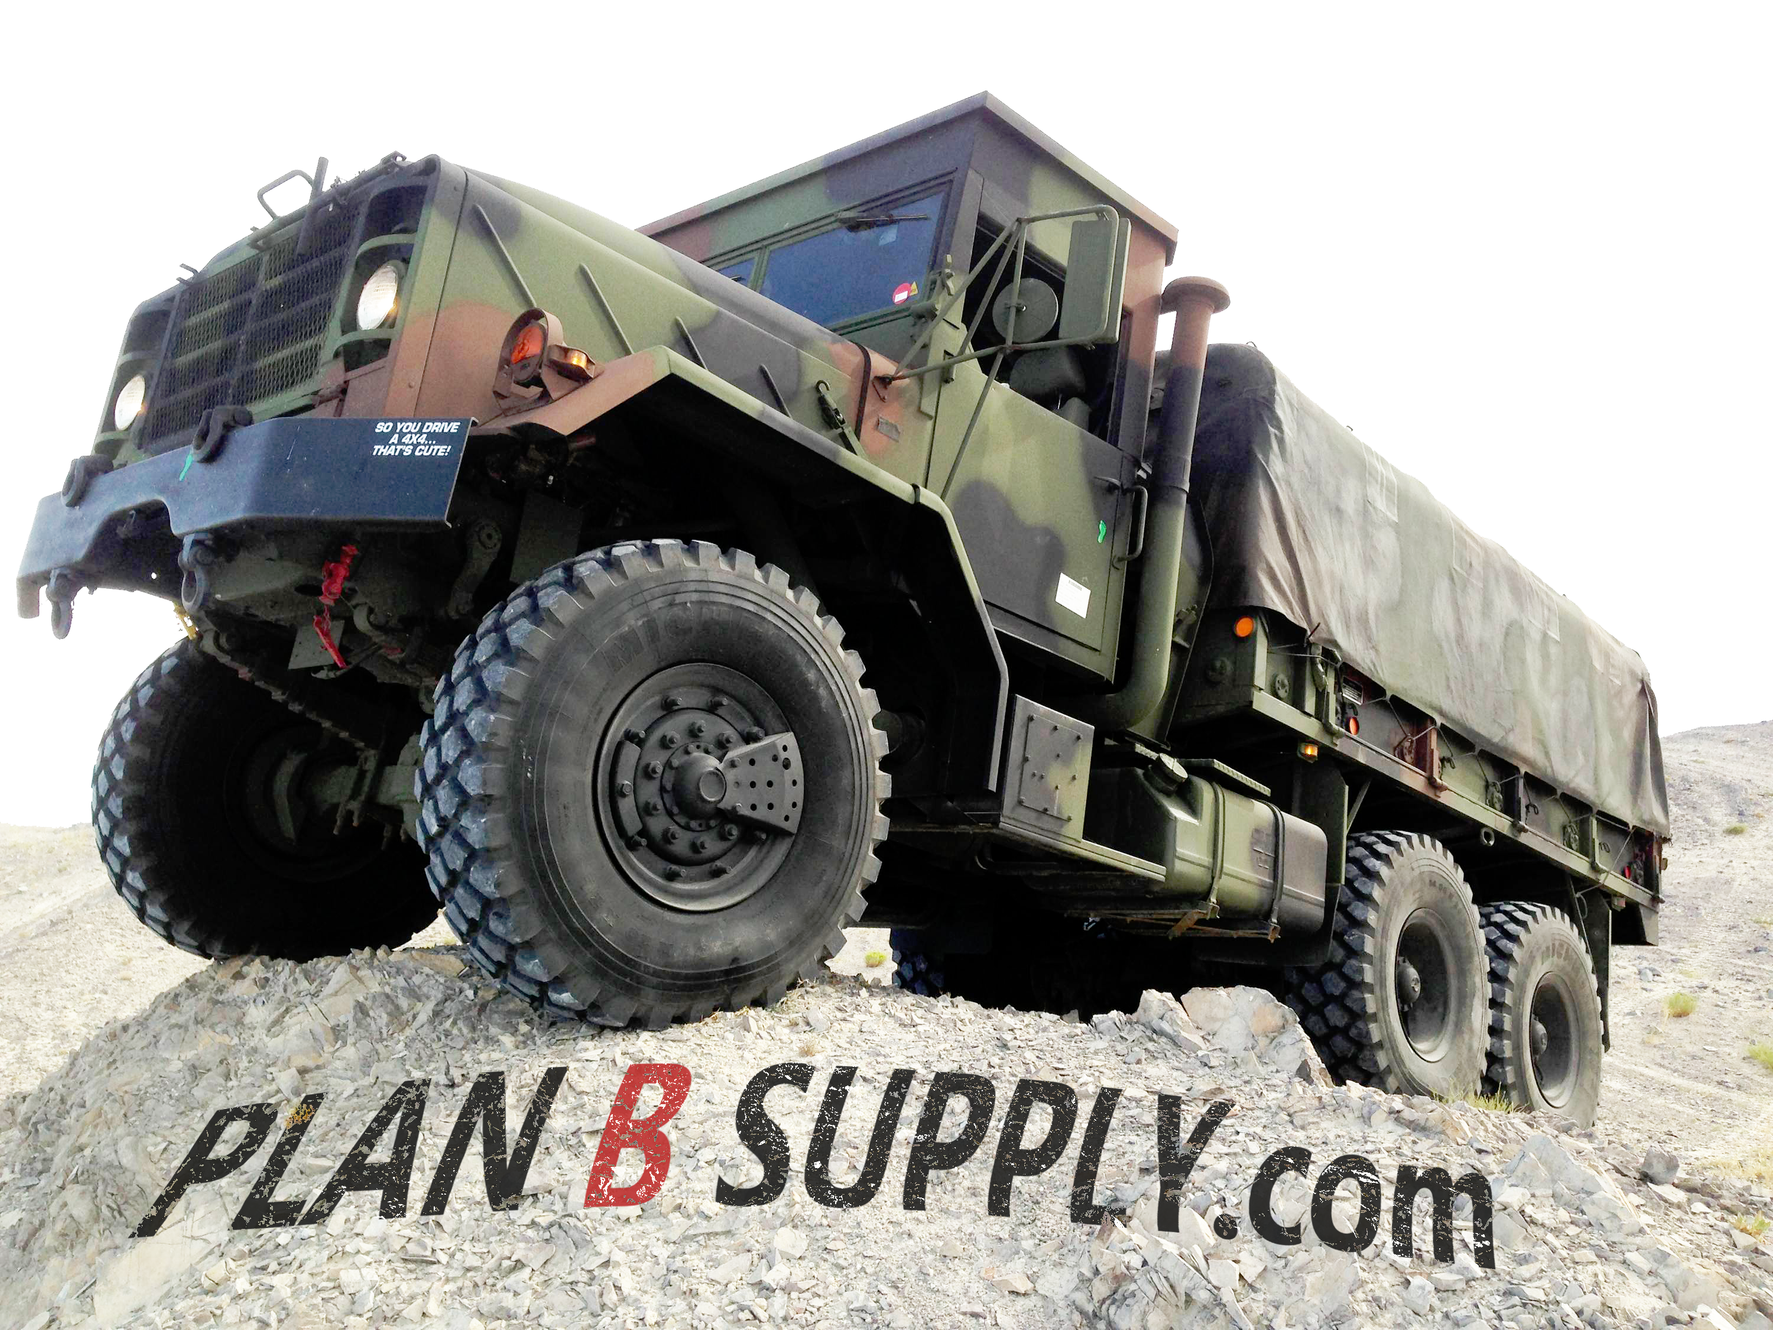 Plan B Supply 6x6 Military Disaster Trucks and Emergency Gear